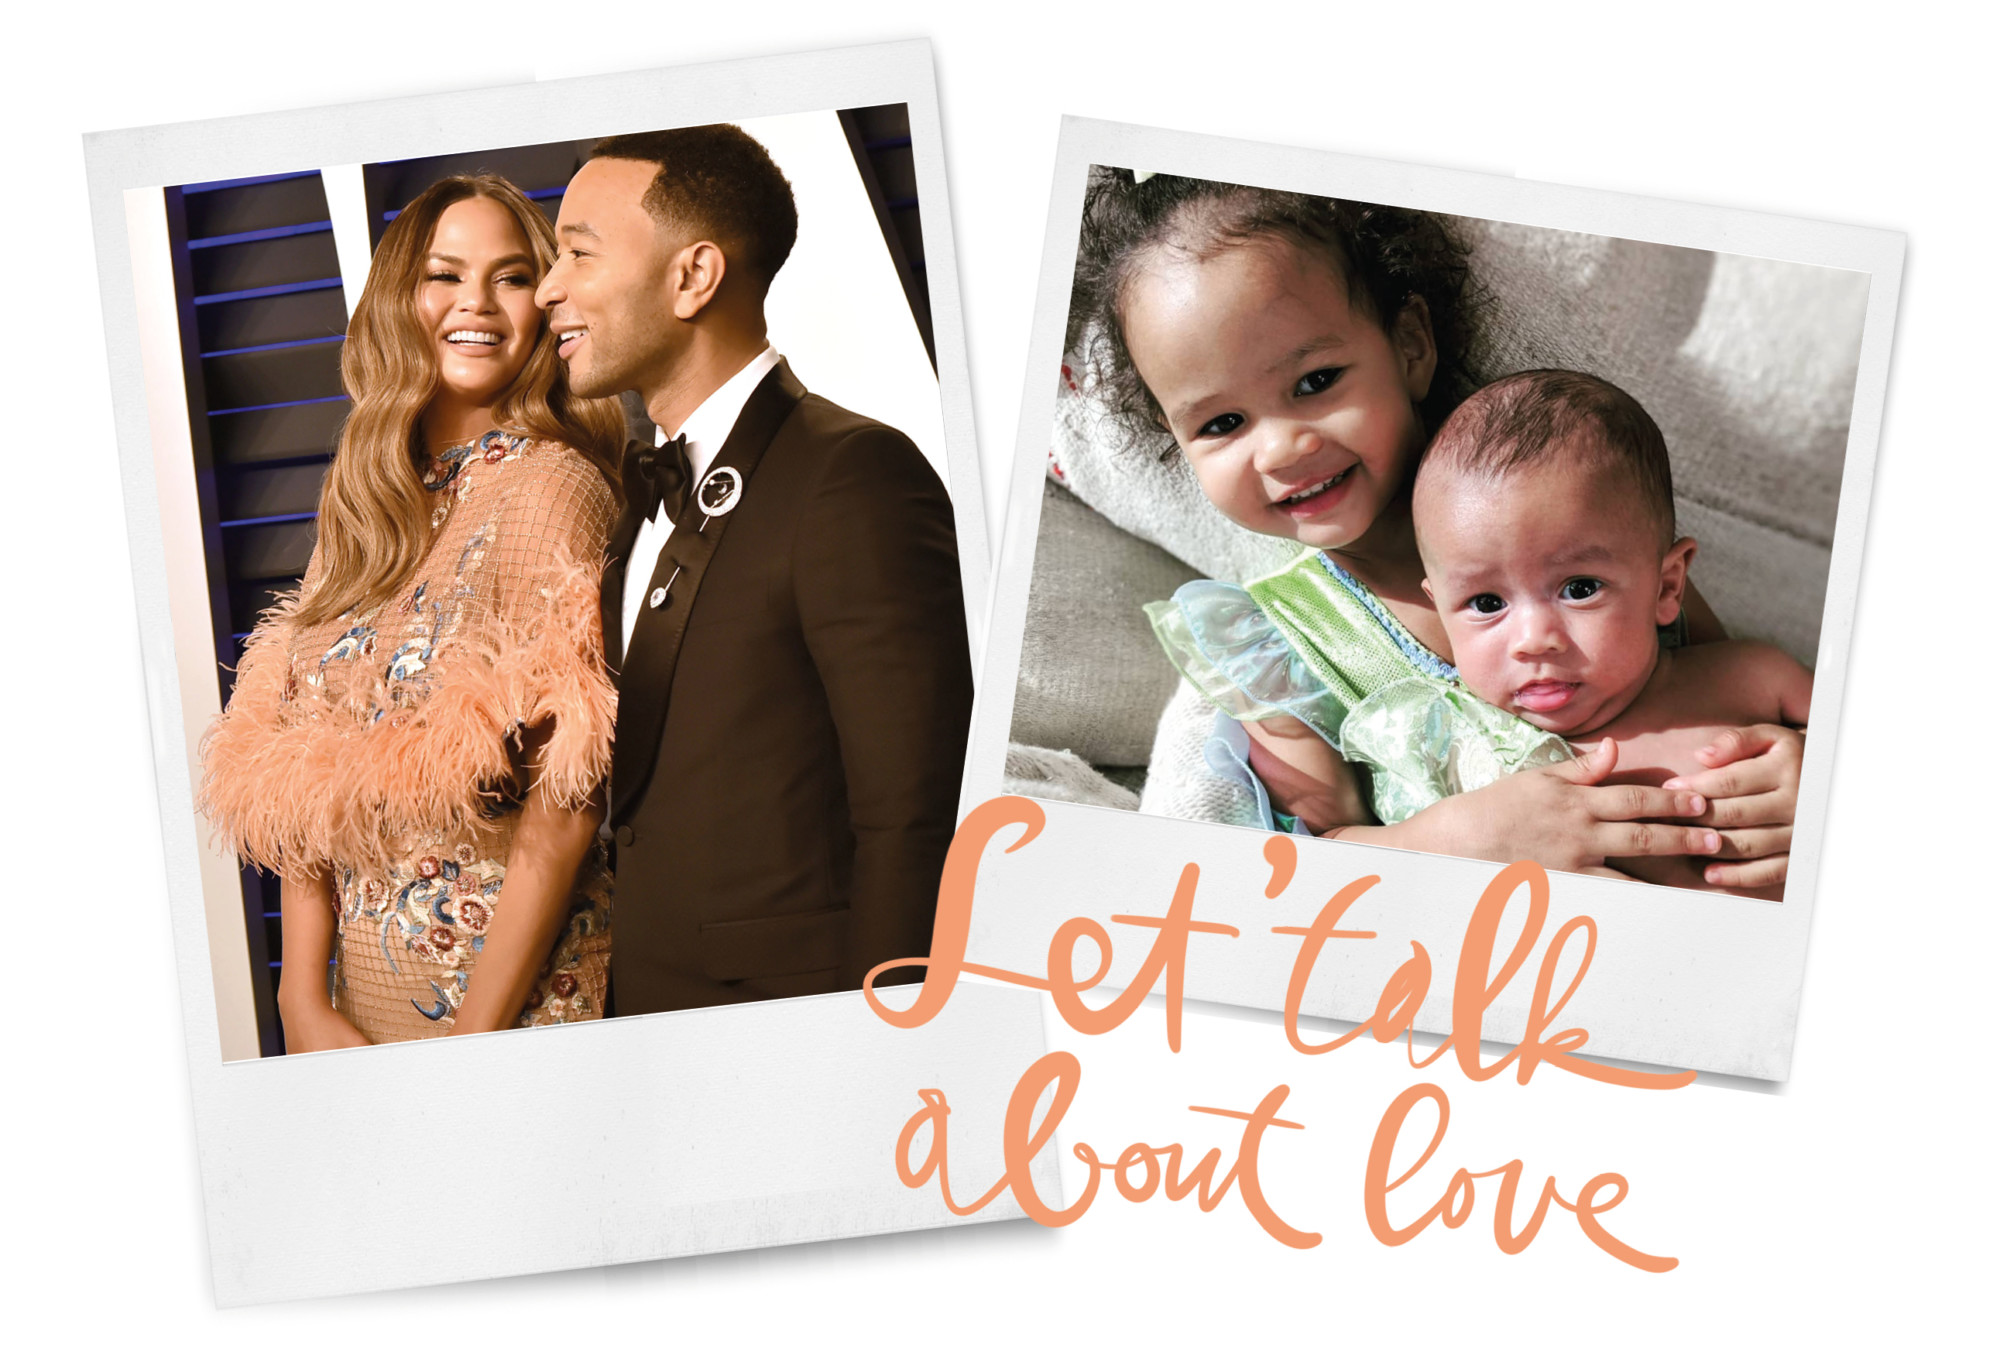 chrissy teigen john legend en kinderen